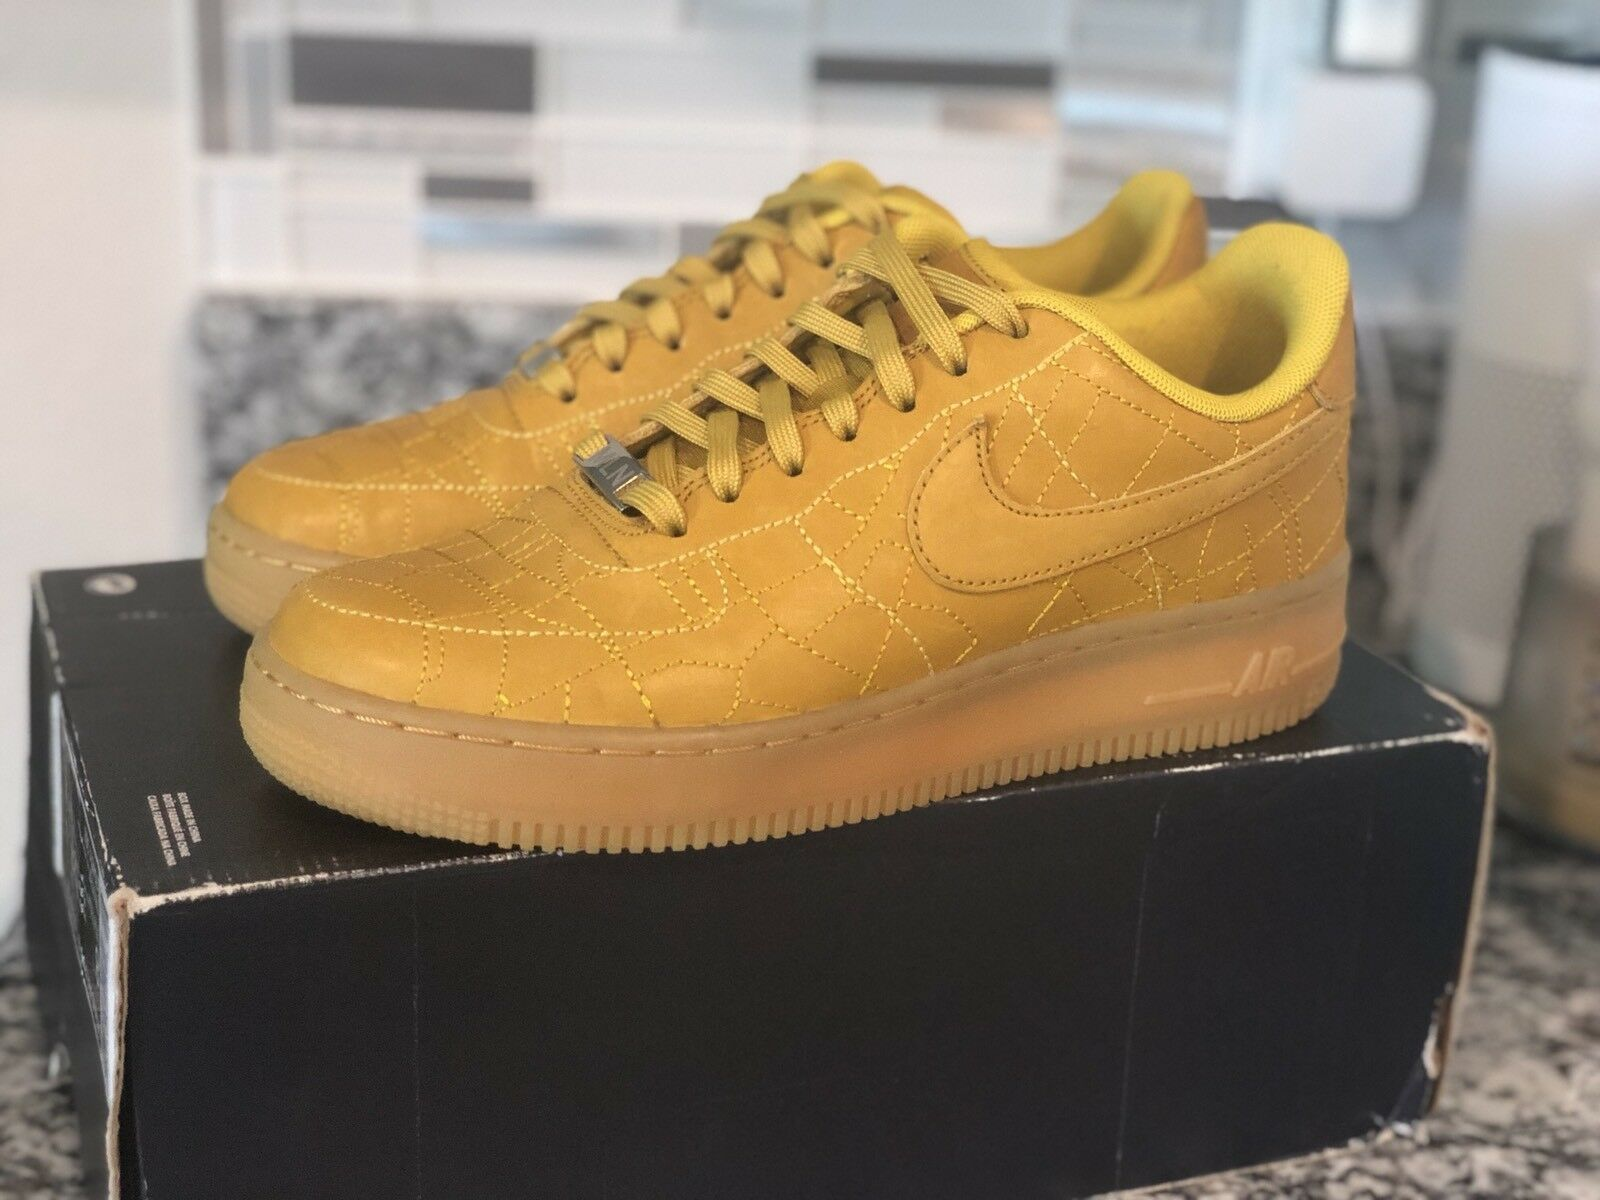 NIKE WMNS AIR FORCE 1 '07 FW QS 704011-300 CITY PACK MILAN DARK CITRON SZ 8